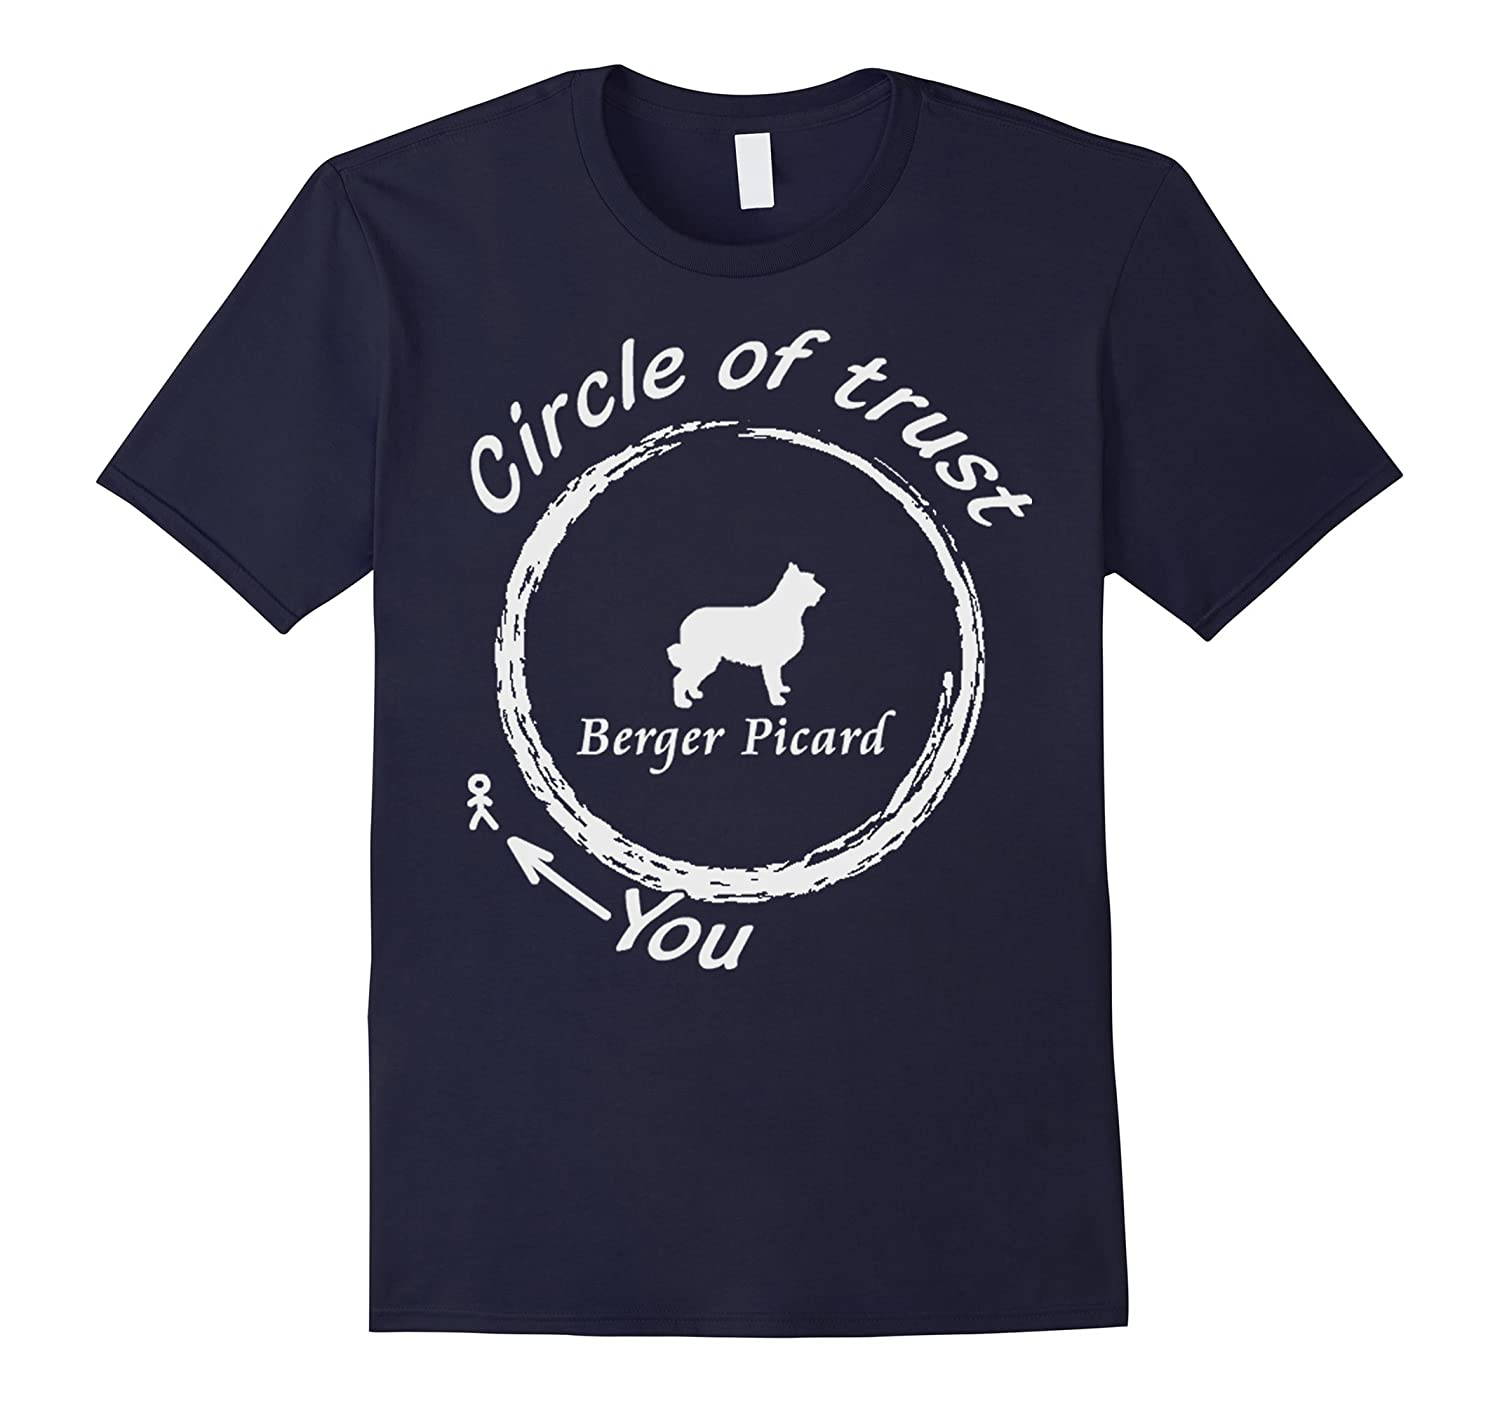 Berger Picard shirt - Berger Picard Circle of trust Dog T sh-TD